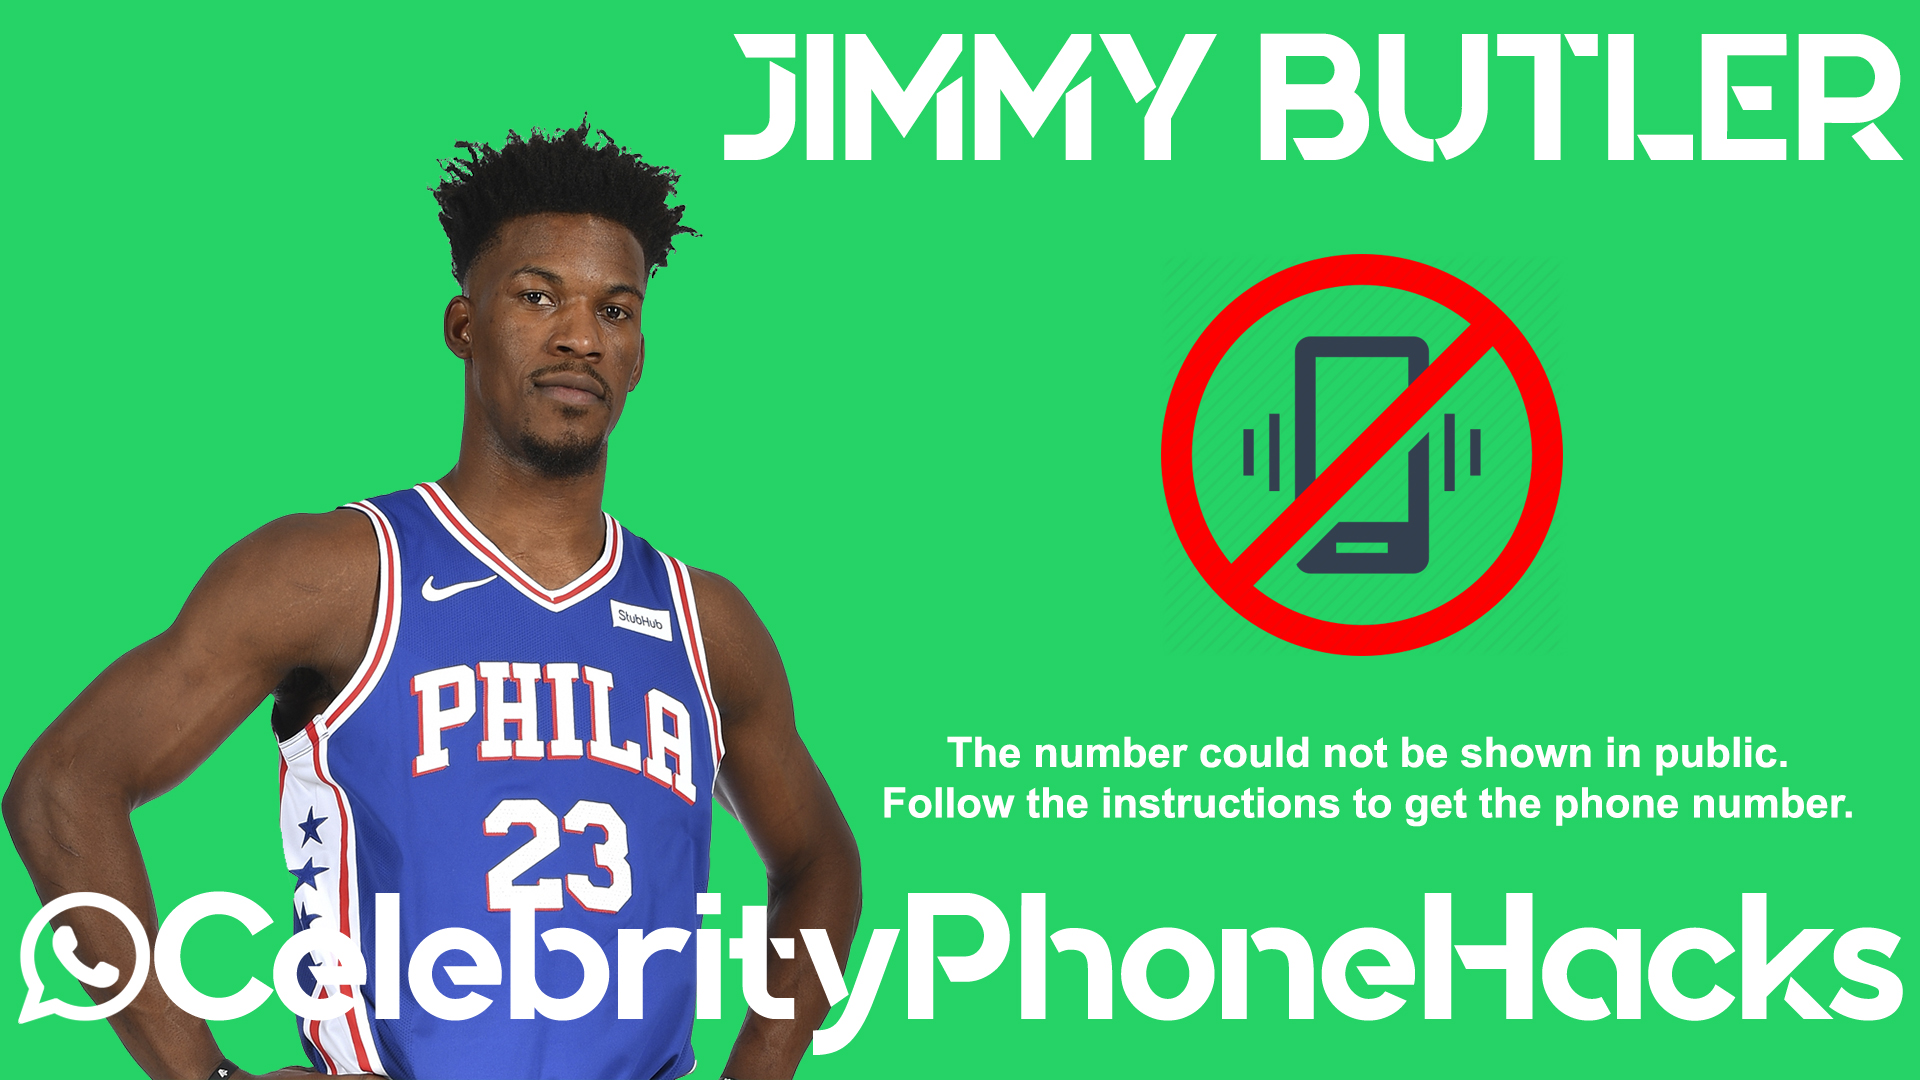 Jimmy Butler real phone number 2019 whatsapp hacked leaked